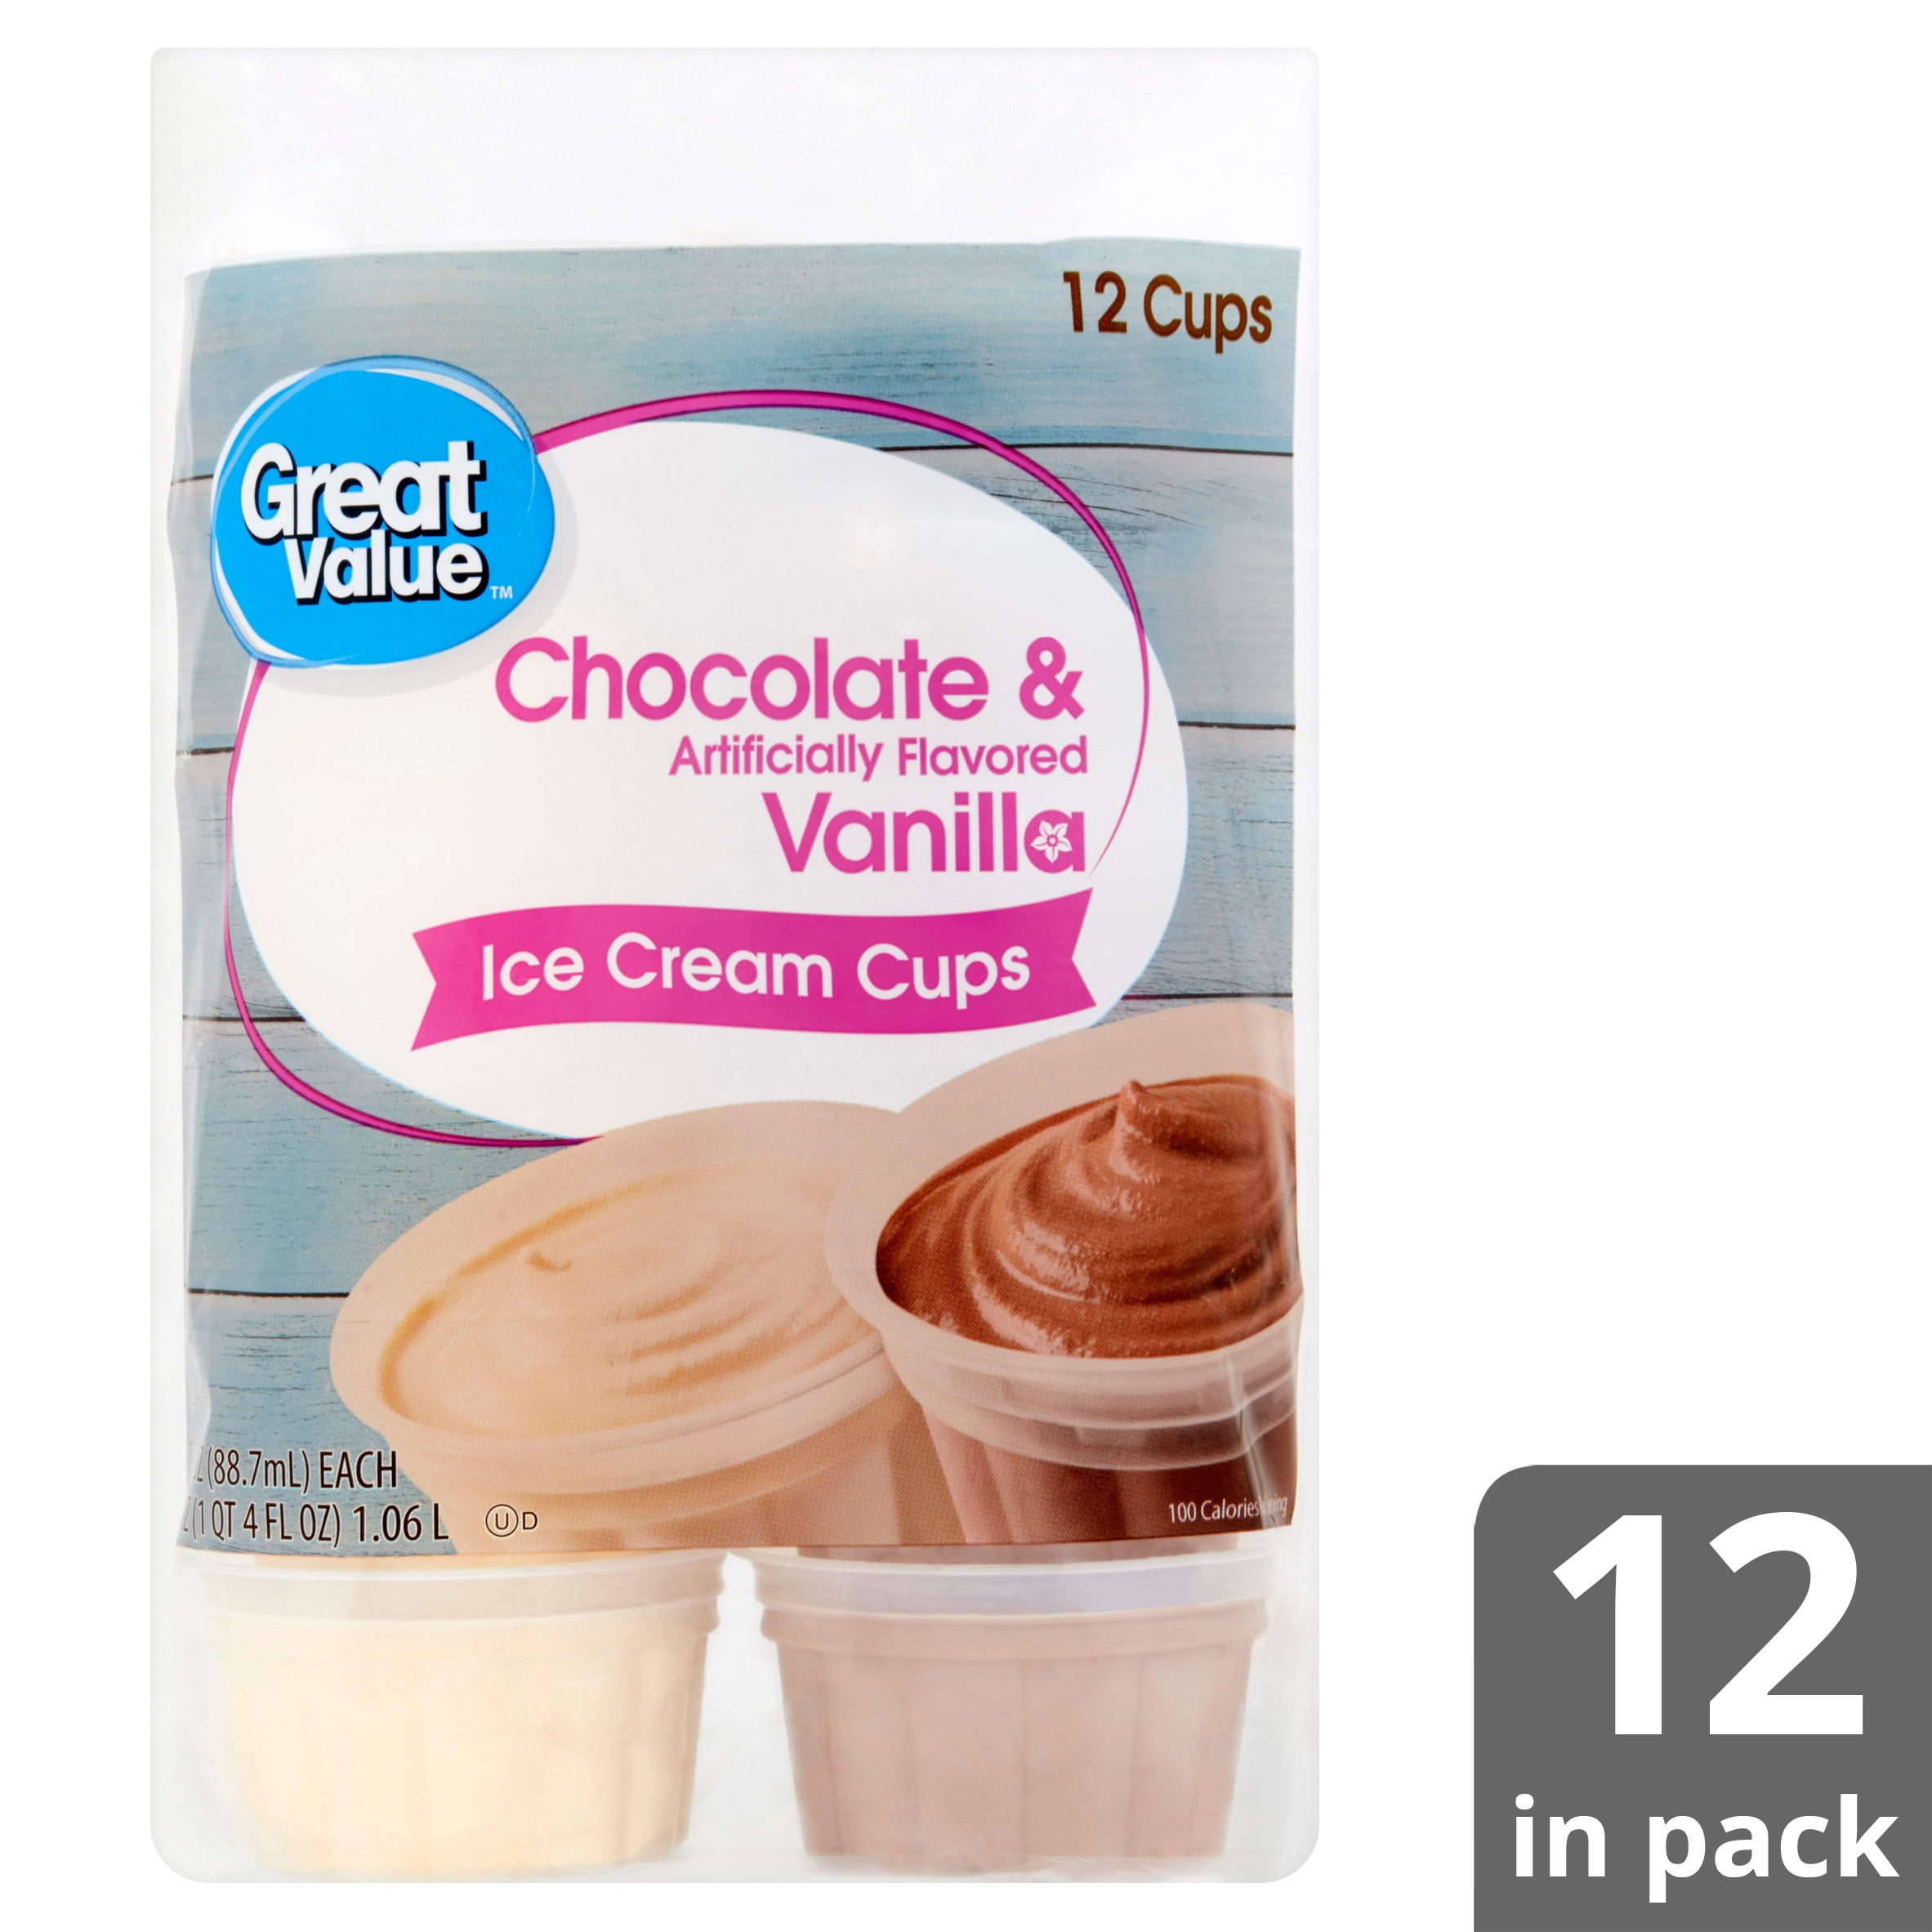 77fad87be38 Great Value Chocolate & Vanilla Ice Cream Cups, 36 oz, 12 Count -  Walmart.com